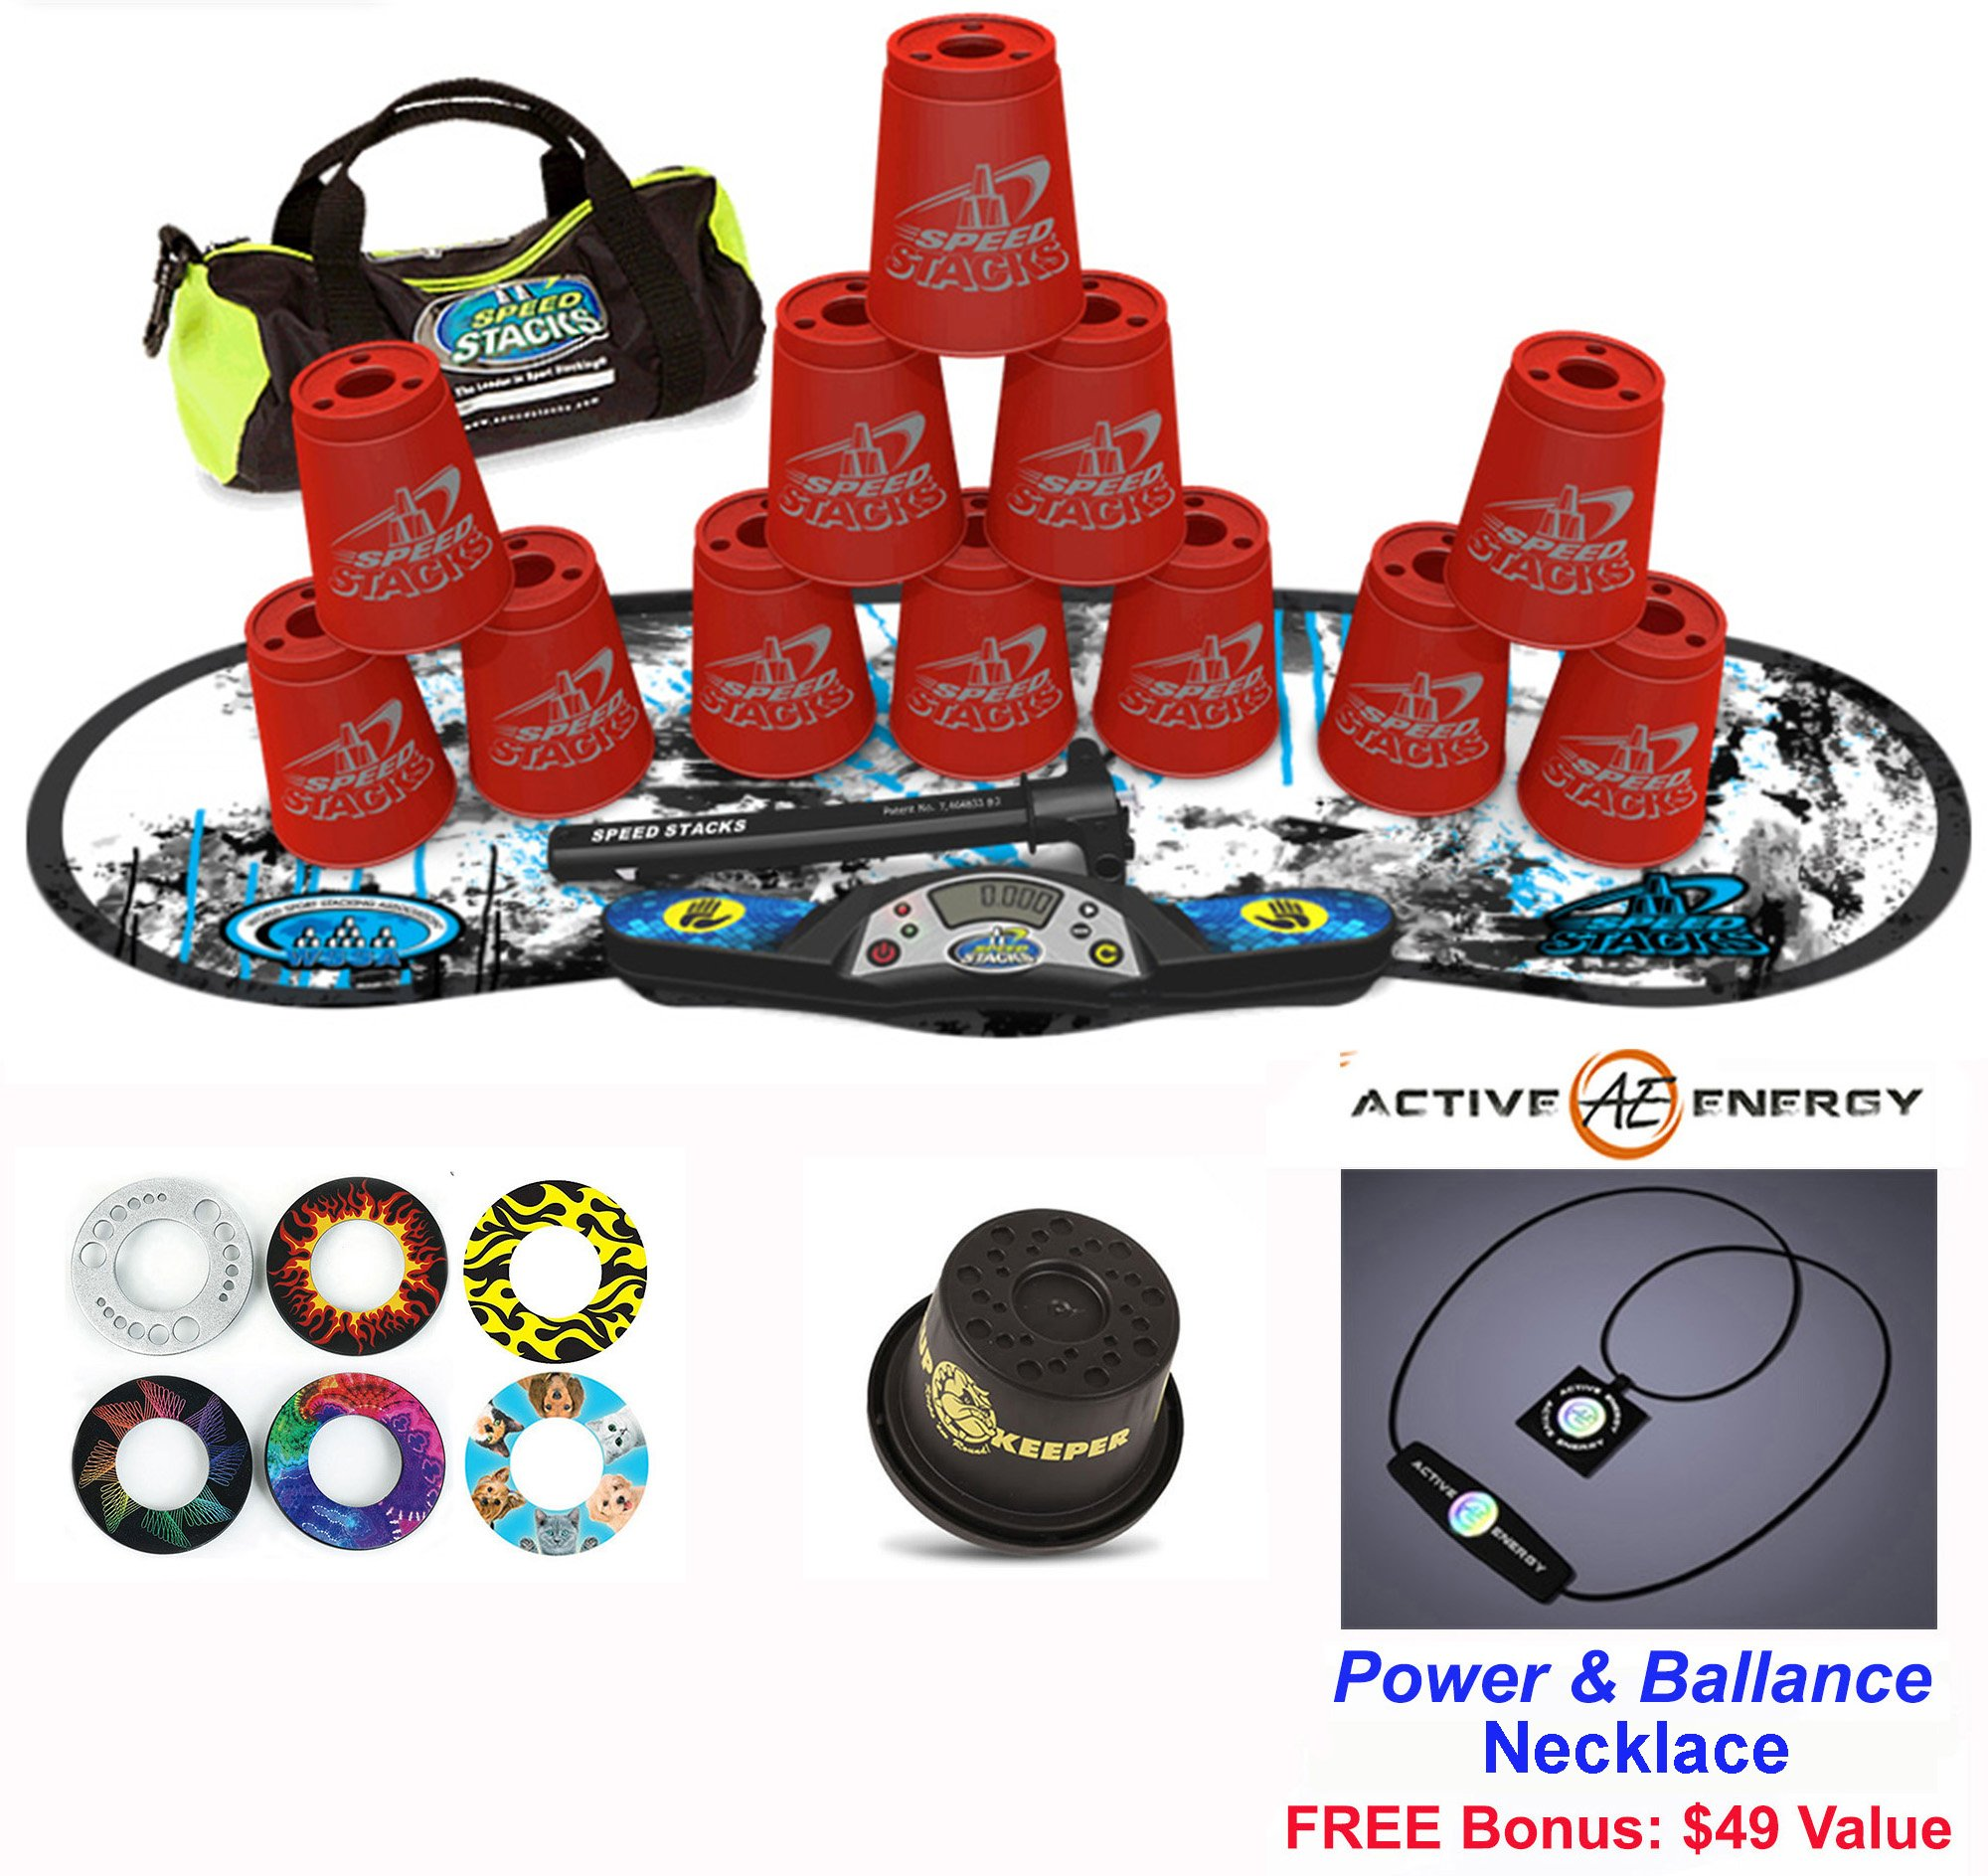 Speed Stacks Combo Set ''The Works'': 12 RED 4'' Cups, REBEL MUDD Gen 3 Mat, G4 Pro Timer, Cup Keeper, Stem, Gear Bag, 6 Snap Tops + Active Energy Necklace